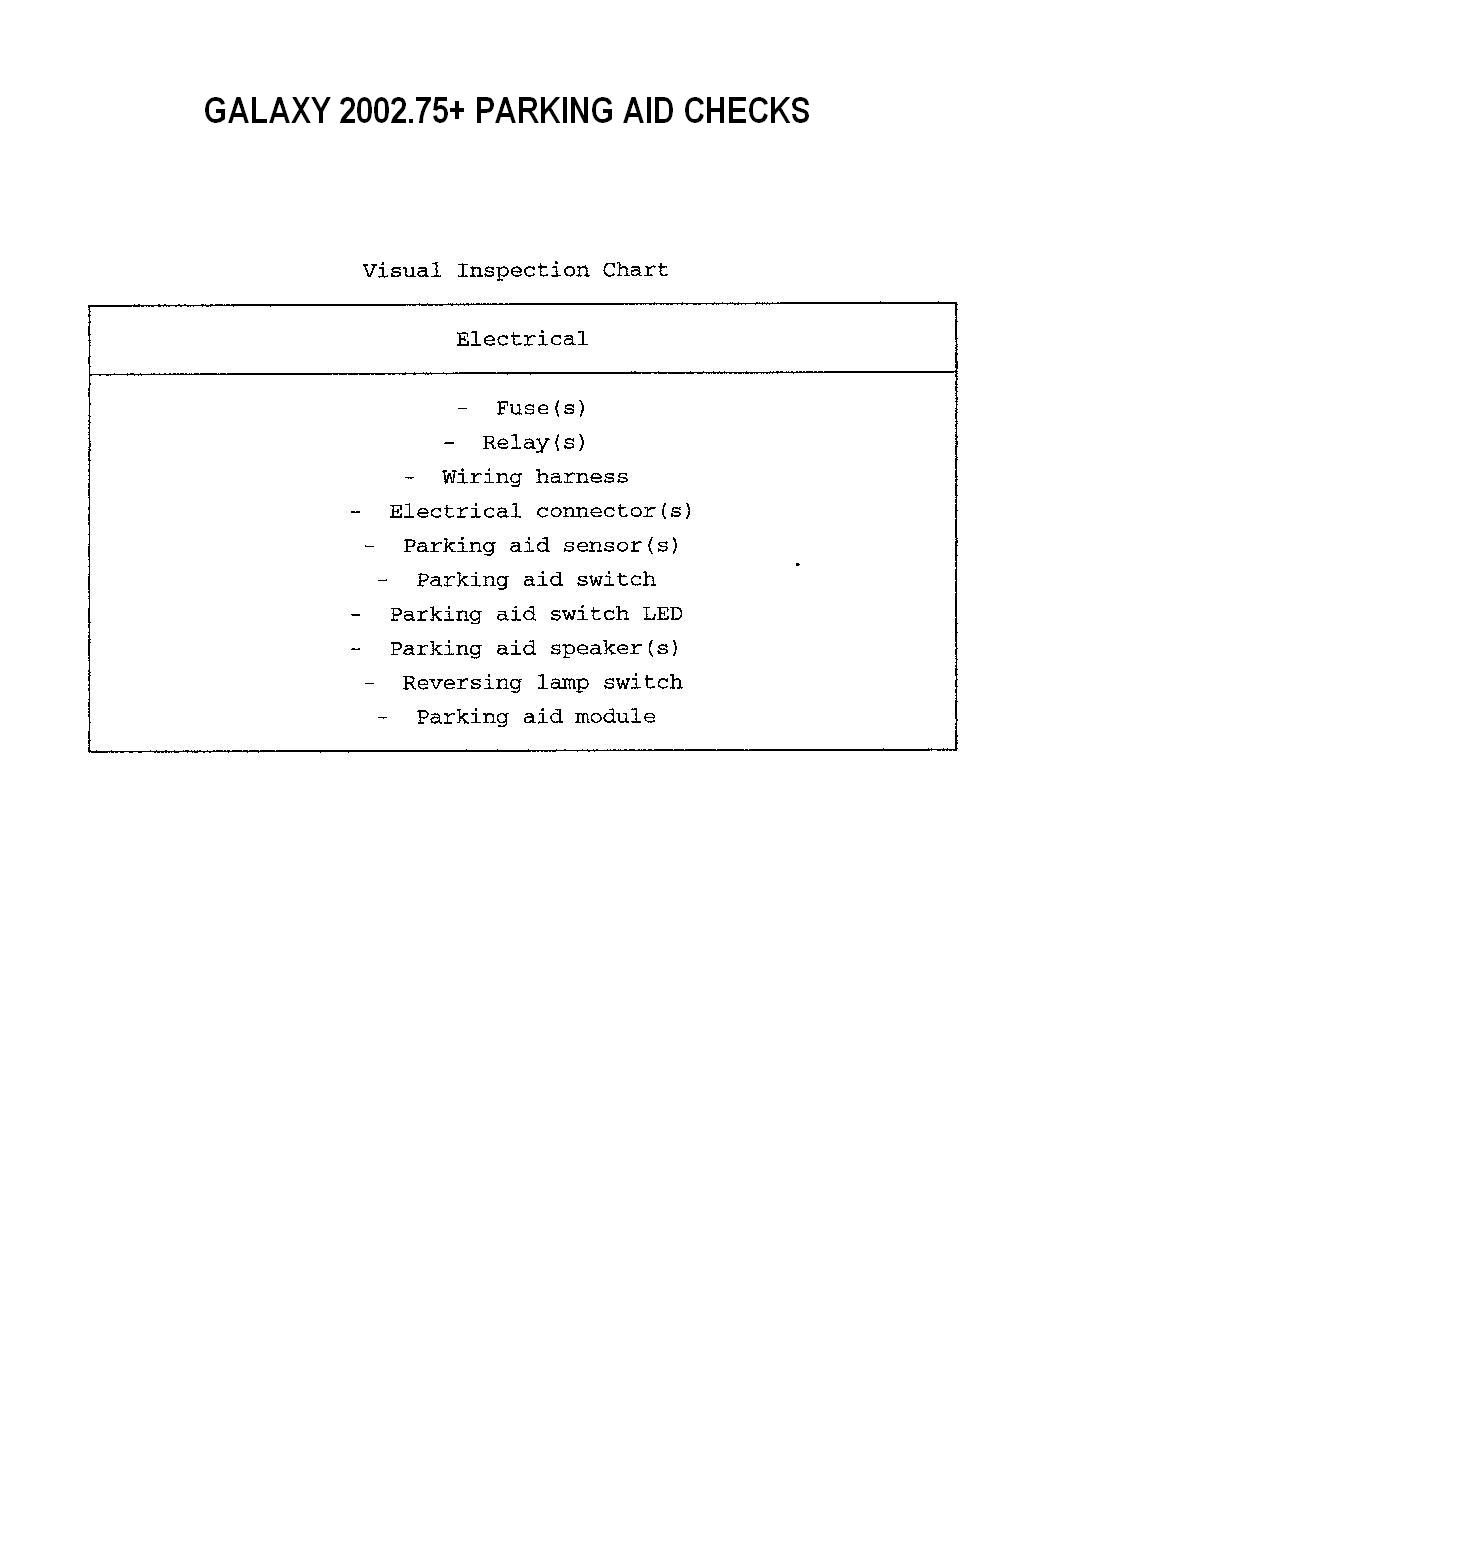 Ford Galaxy 19tdi 2003 Parking Sensor Fault One Of Front Sensors Is Mk2 Central Locking Wiring Diagram Hope This Helps